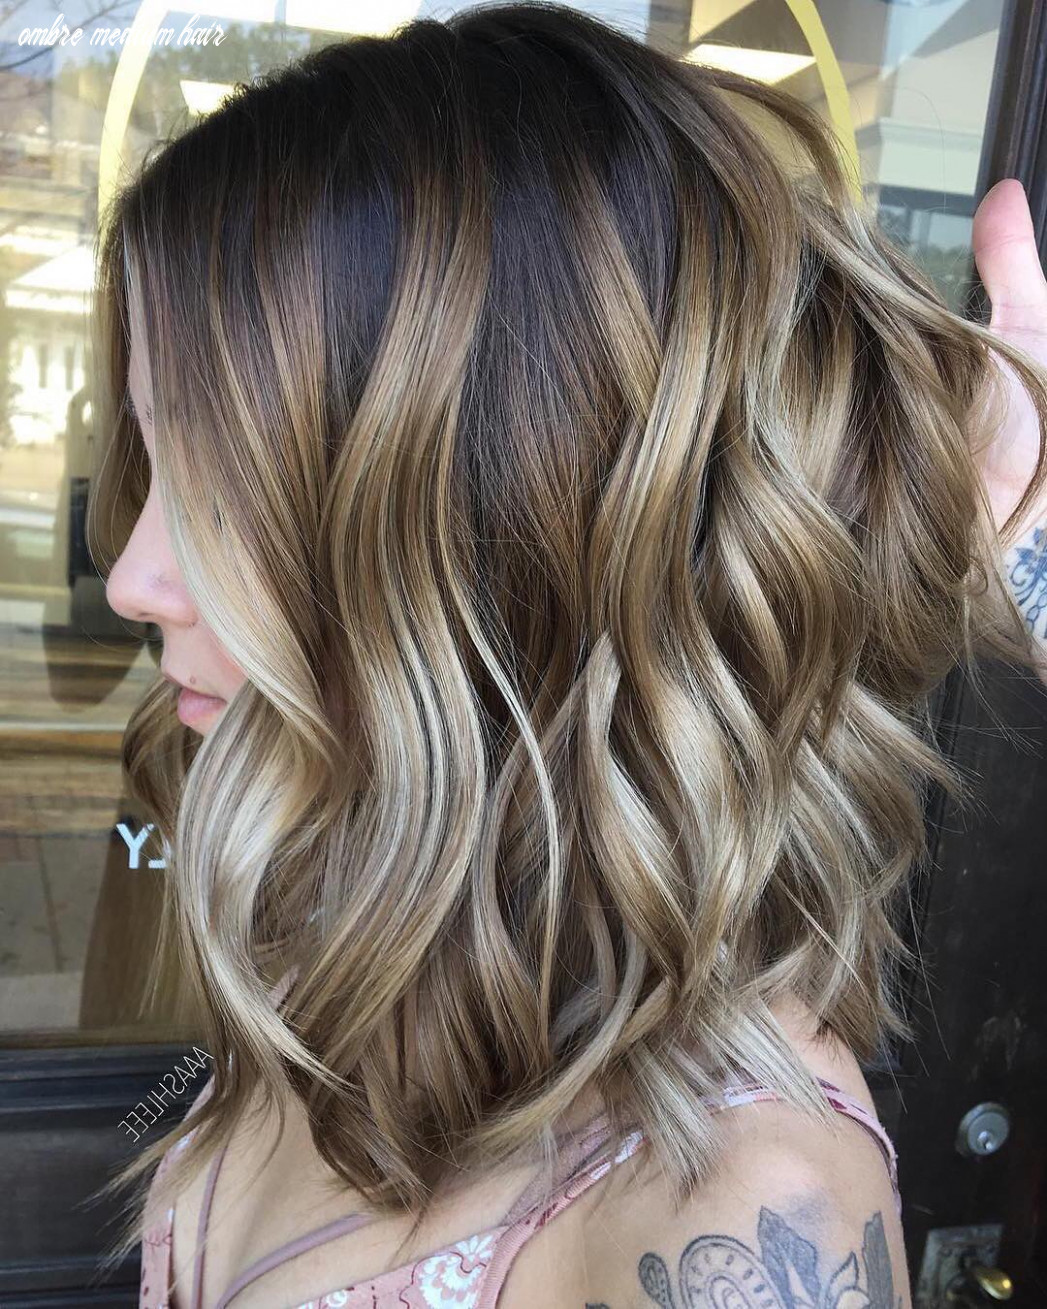 9 ombre balayage hairstyles for medium length hair, hair color 9 ombre medium hair